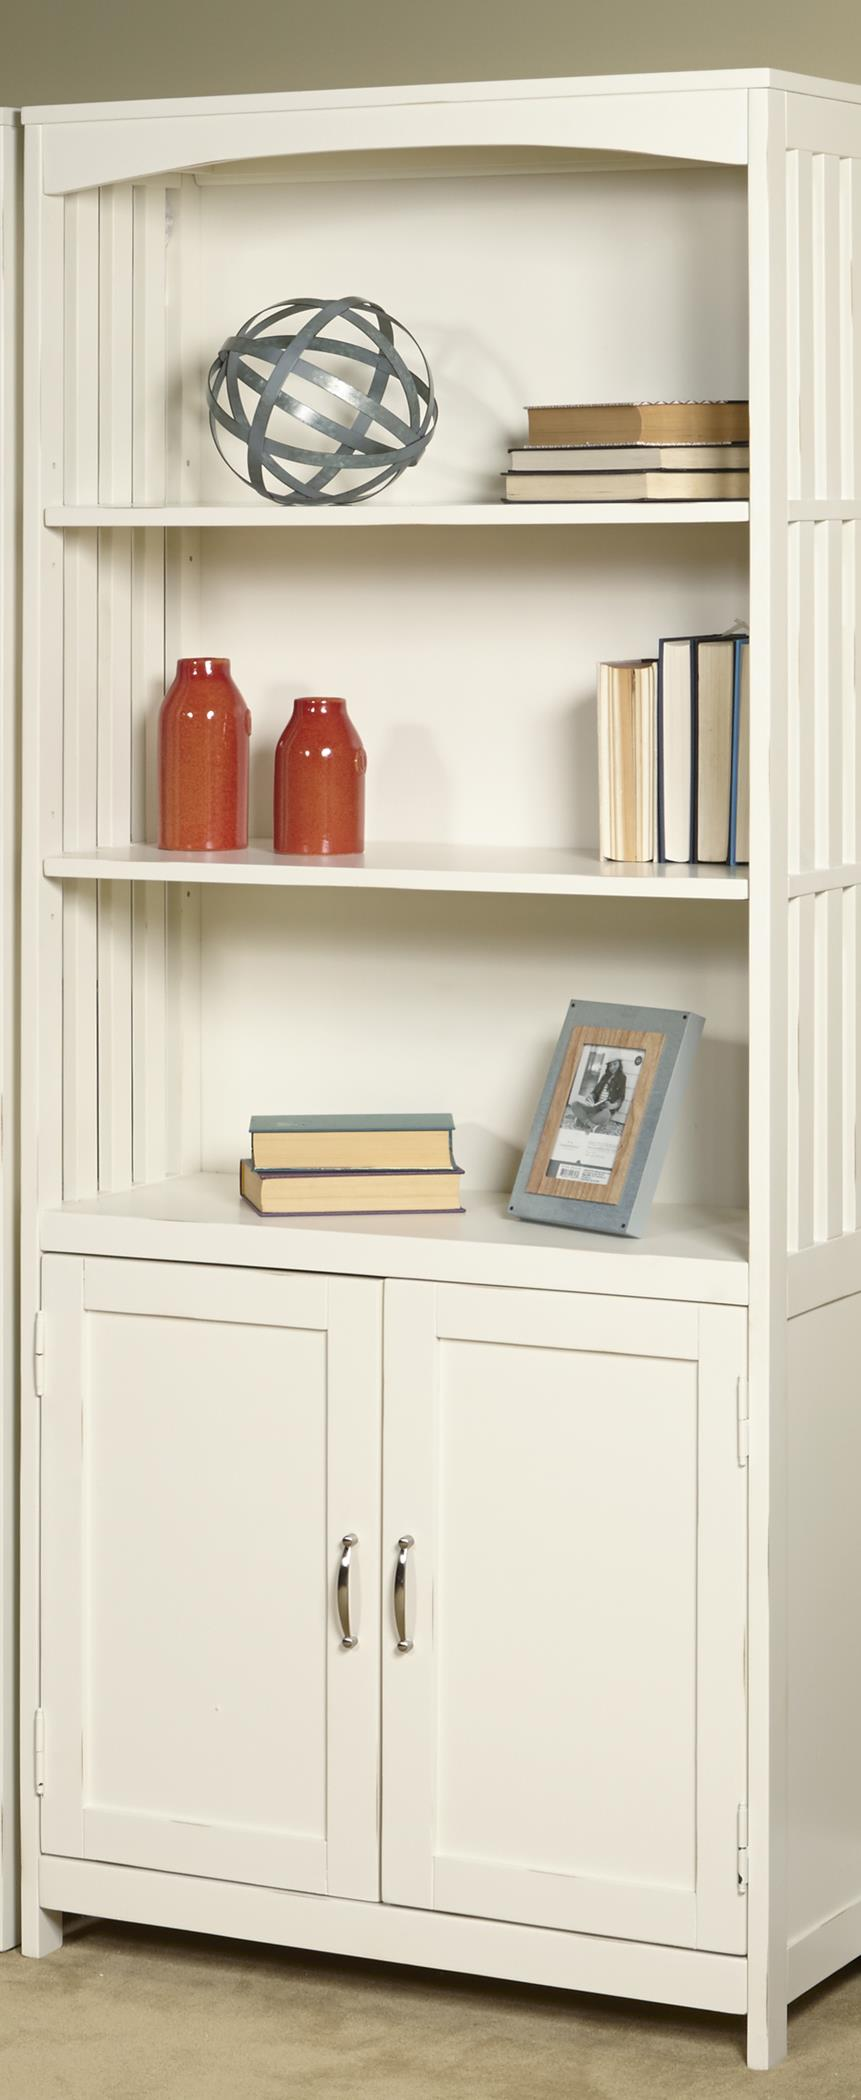 Liberty Furniture Hampton Bay - White Door Bookcase                                - Item Number: 715-HO202